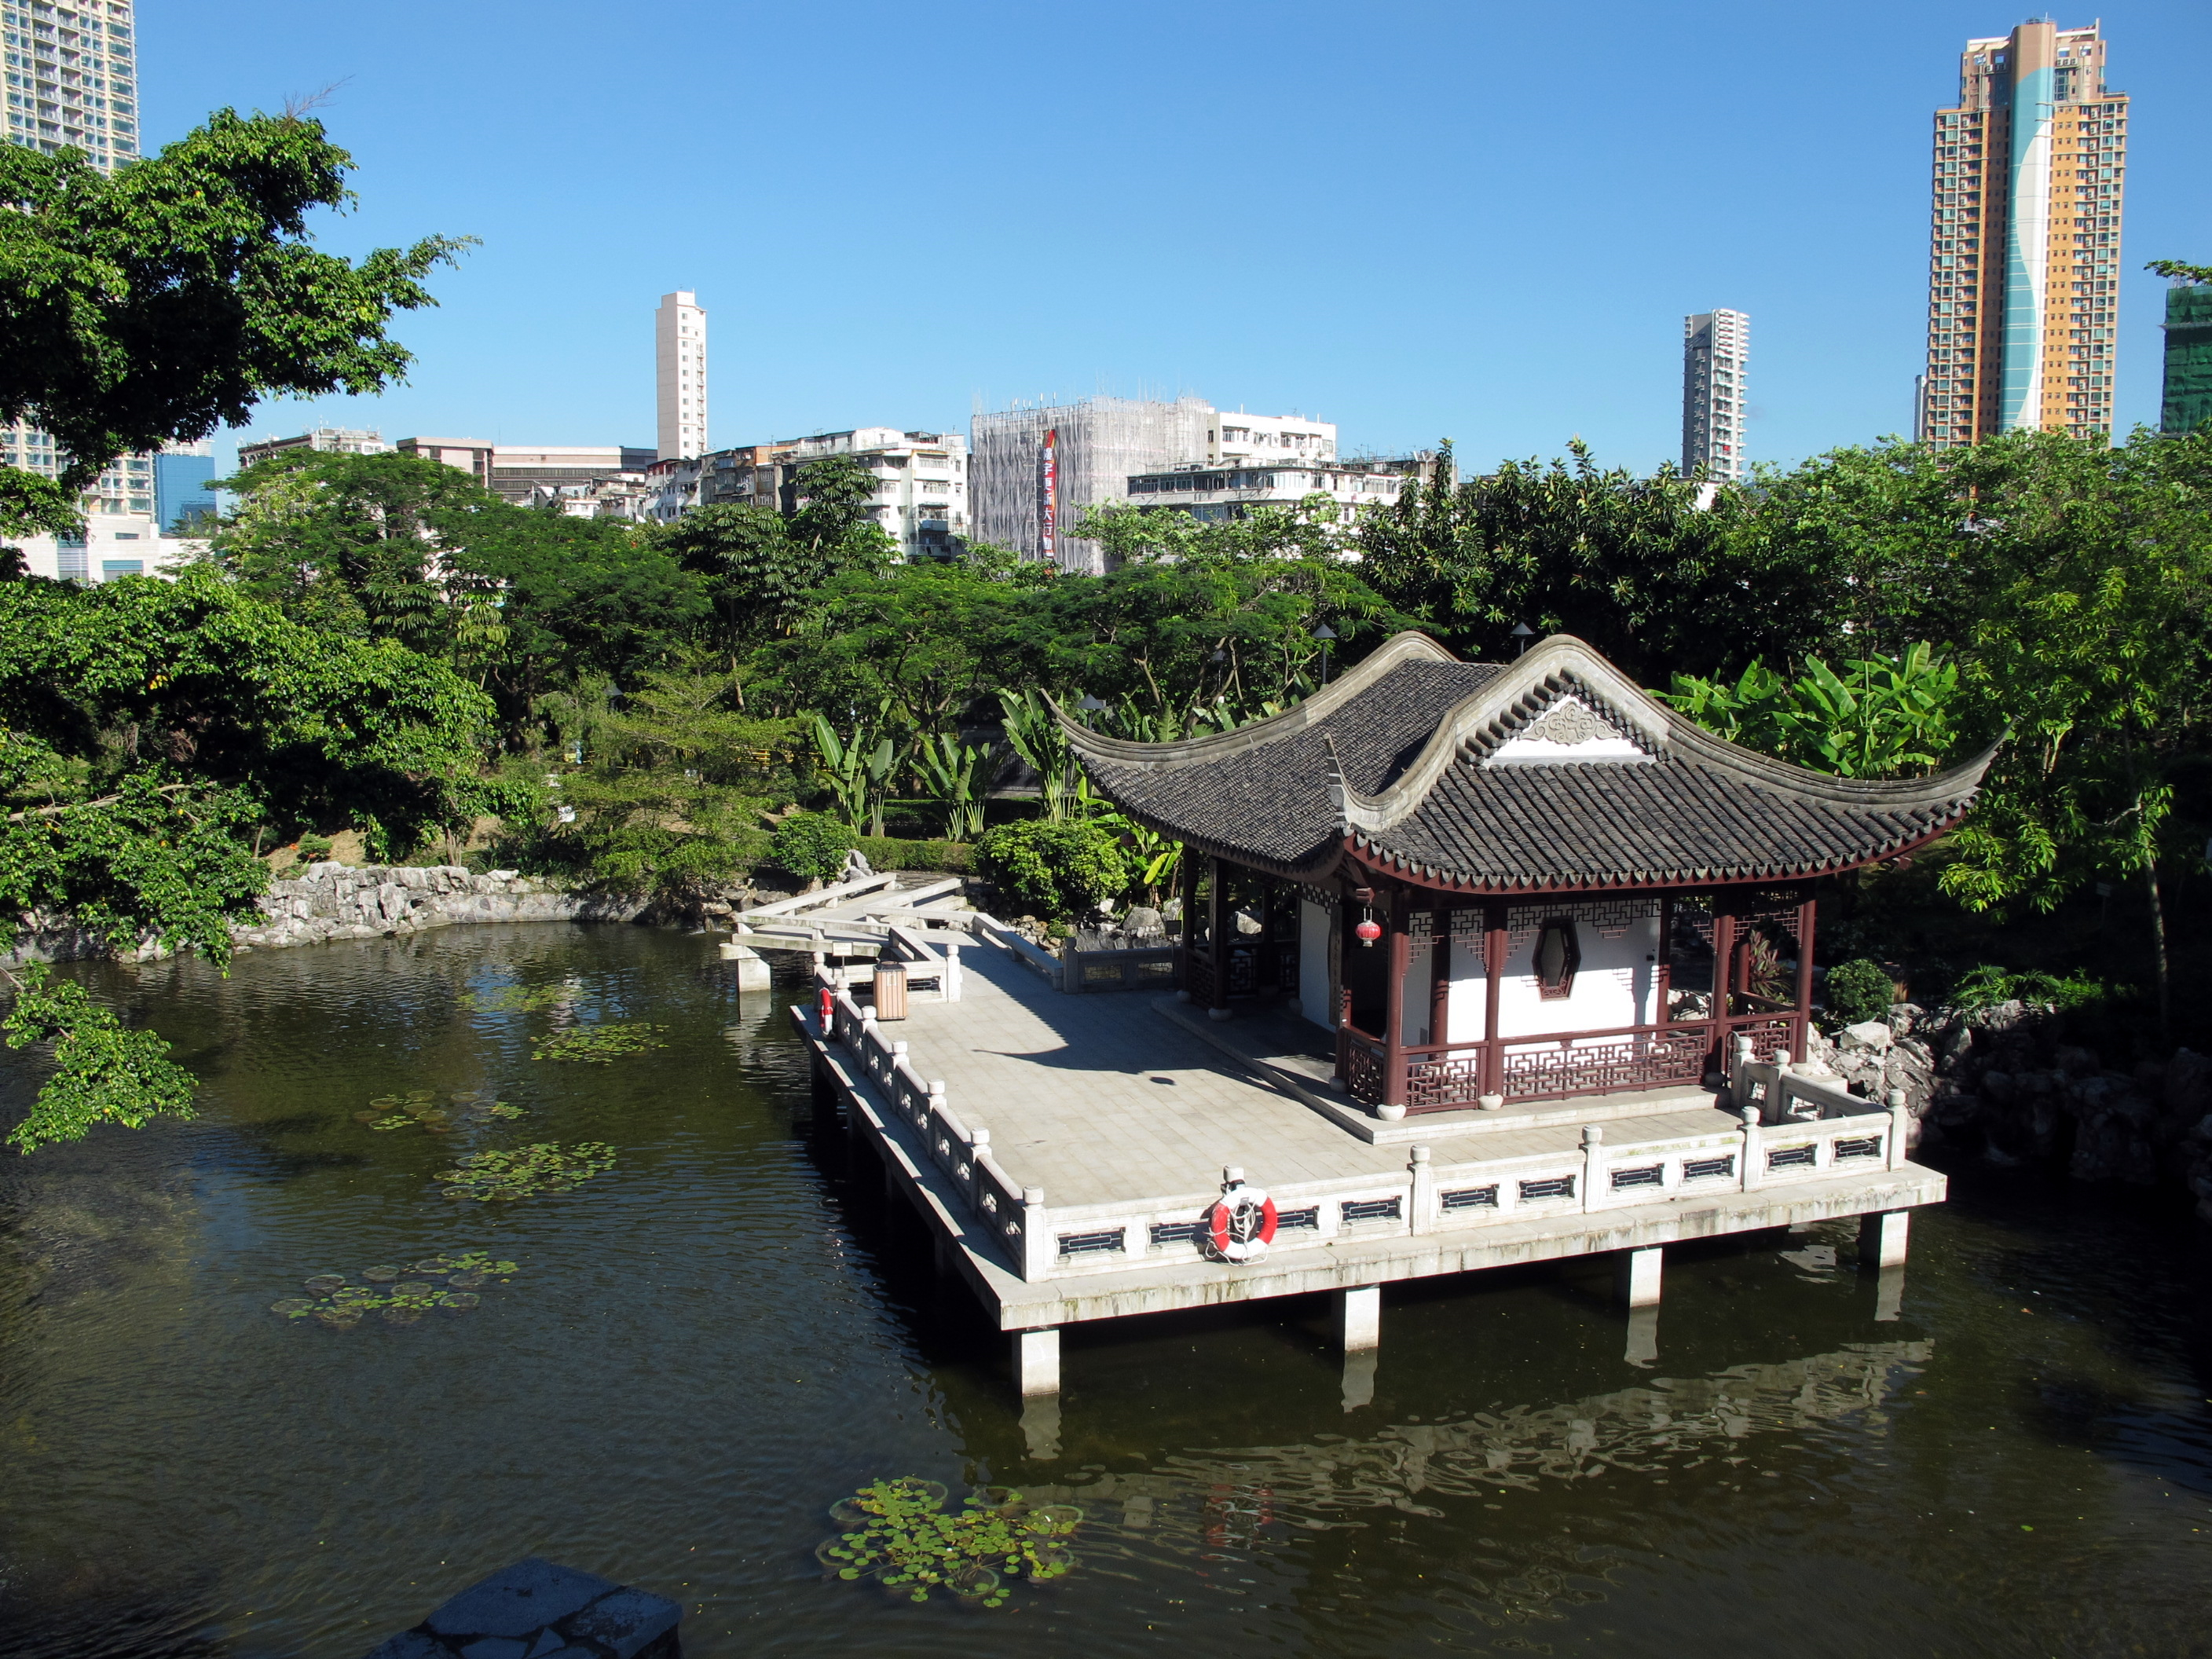 Kowloon_Walled_City_Park_View_3_201007.jpg